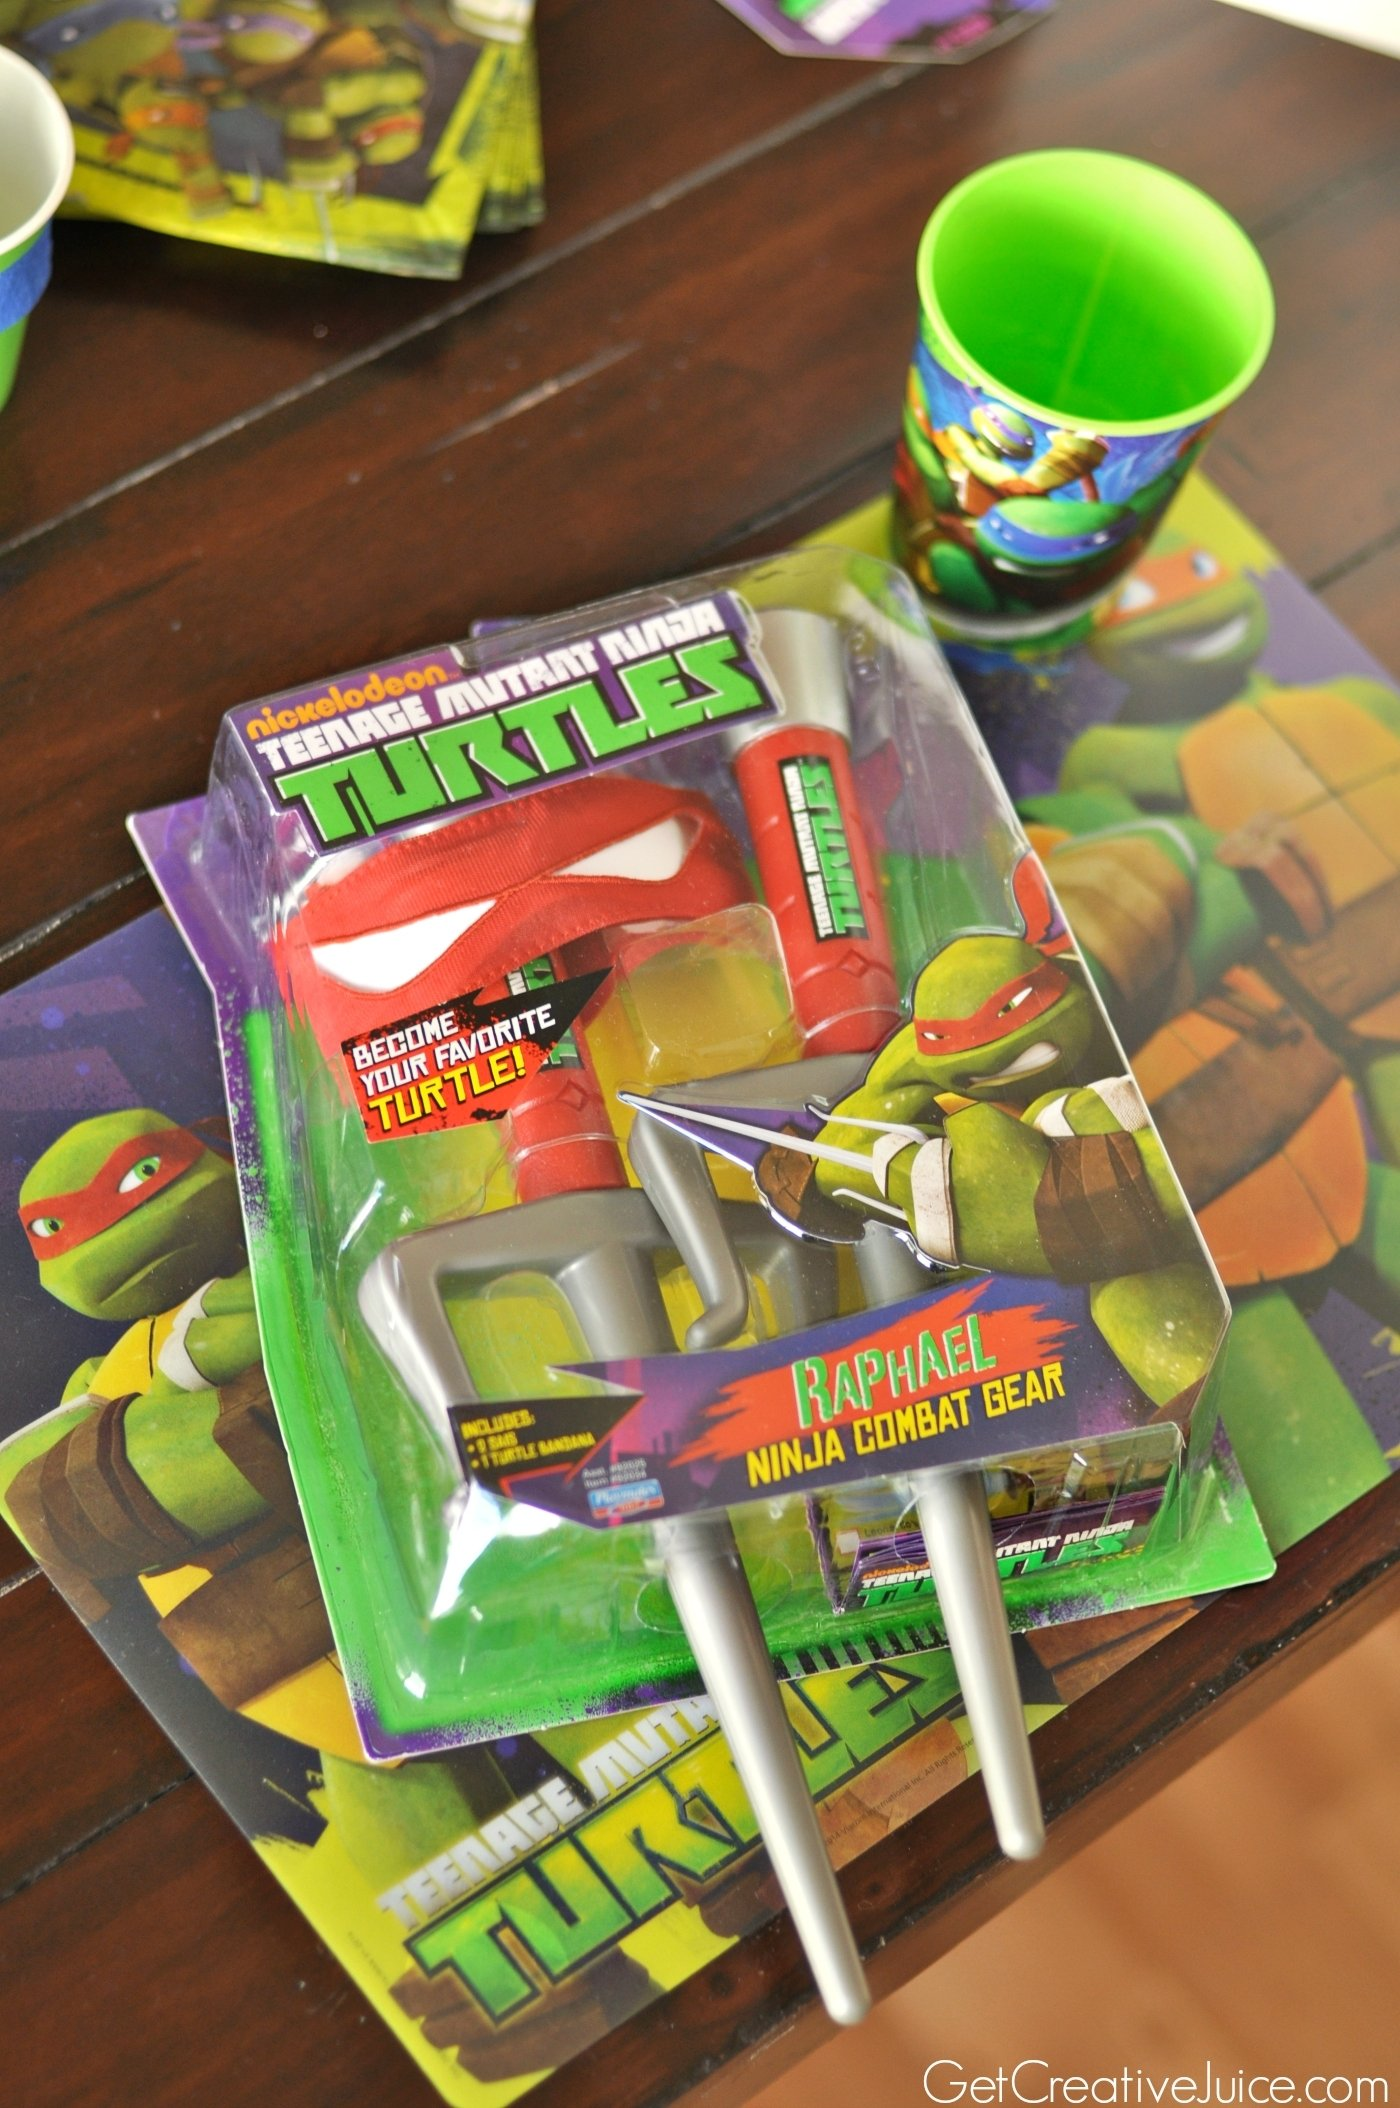 10 Awesome Teenage Mutant Ninja Turtles Party Favor Ideas tmnt party creative juice 1